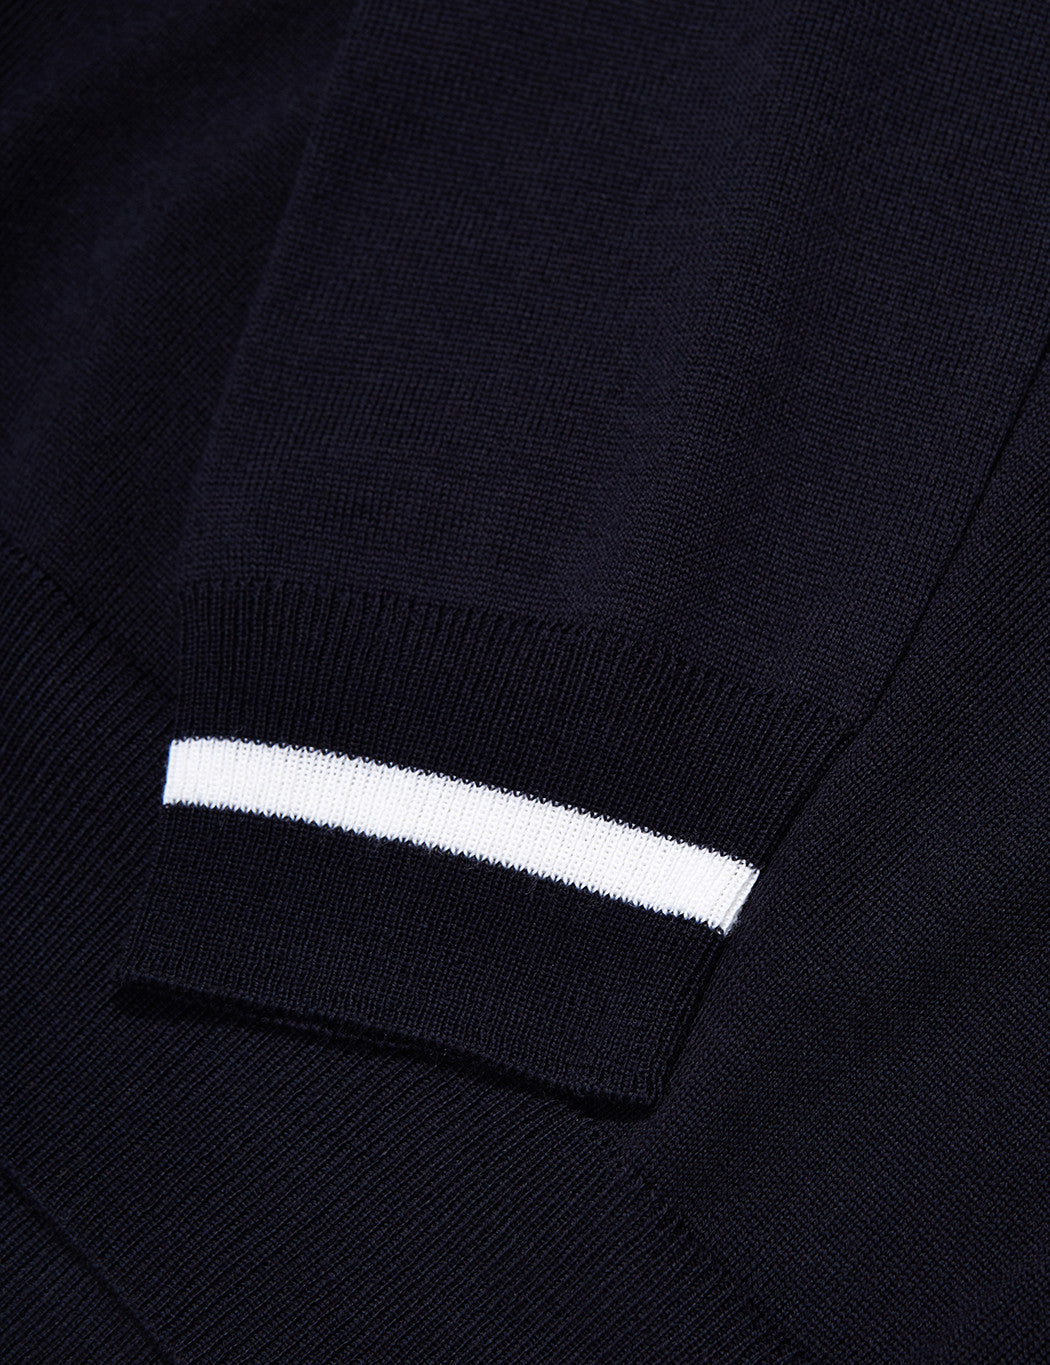 Fred Perry Re-issues Tipped Cuff Knit Polo Shirt - Navy